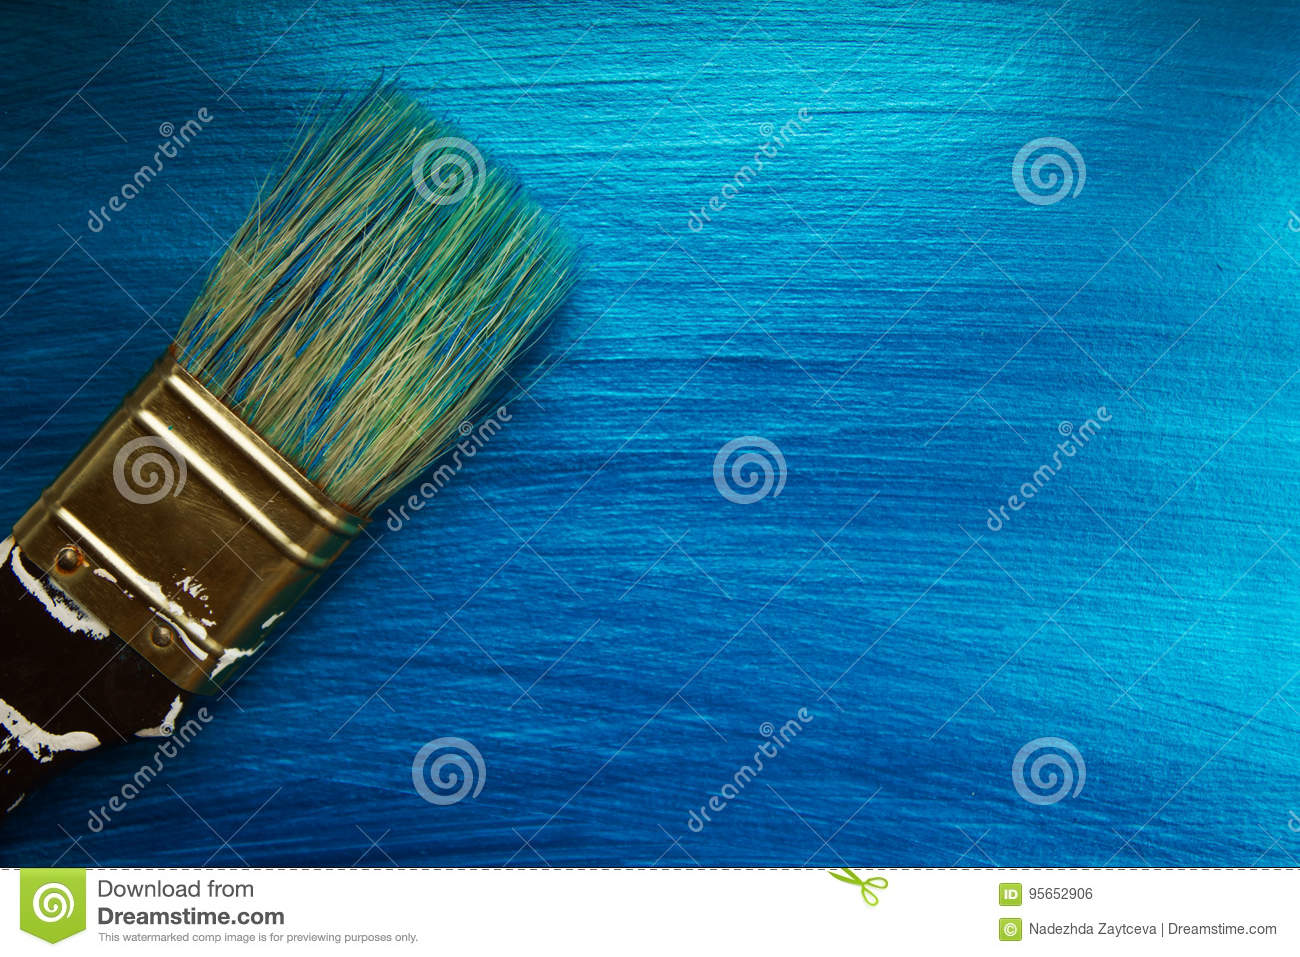 A brush on a blue nacreous color painted background.